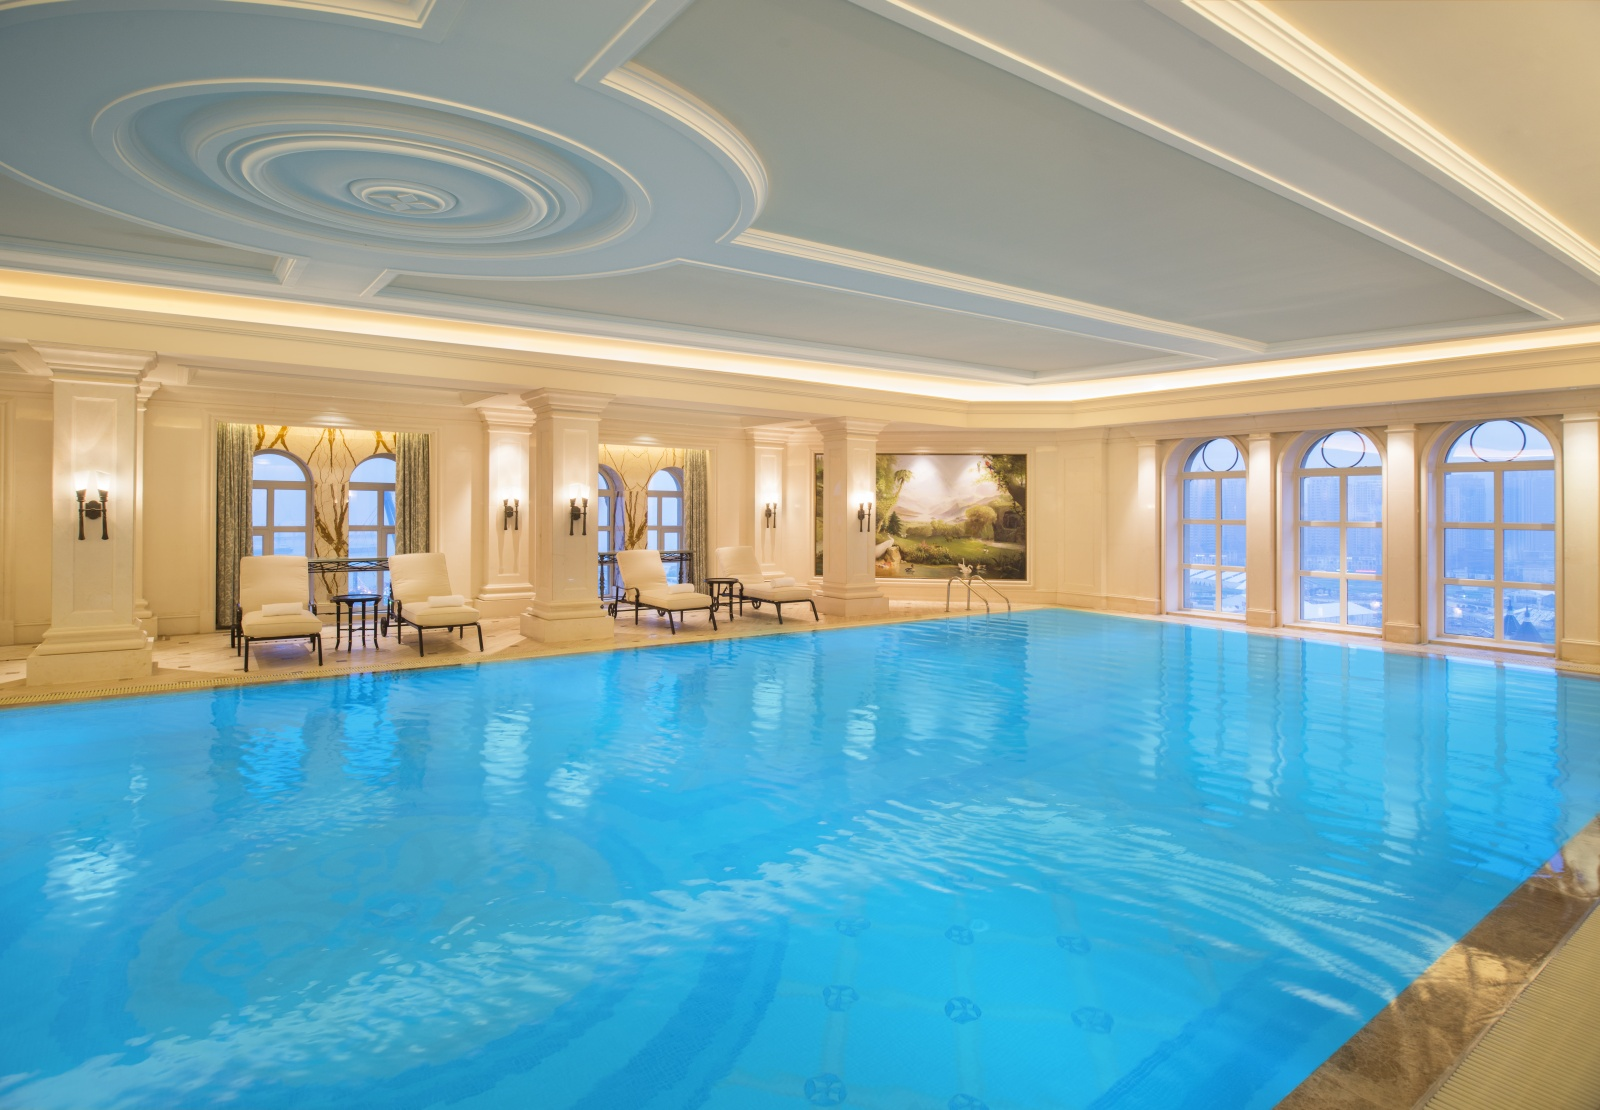 The castle hotel in dalian Hotel in ohio with swimming pool in room